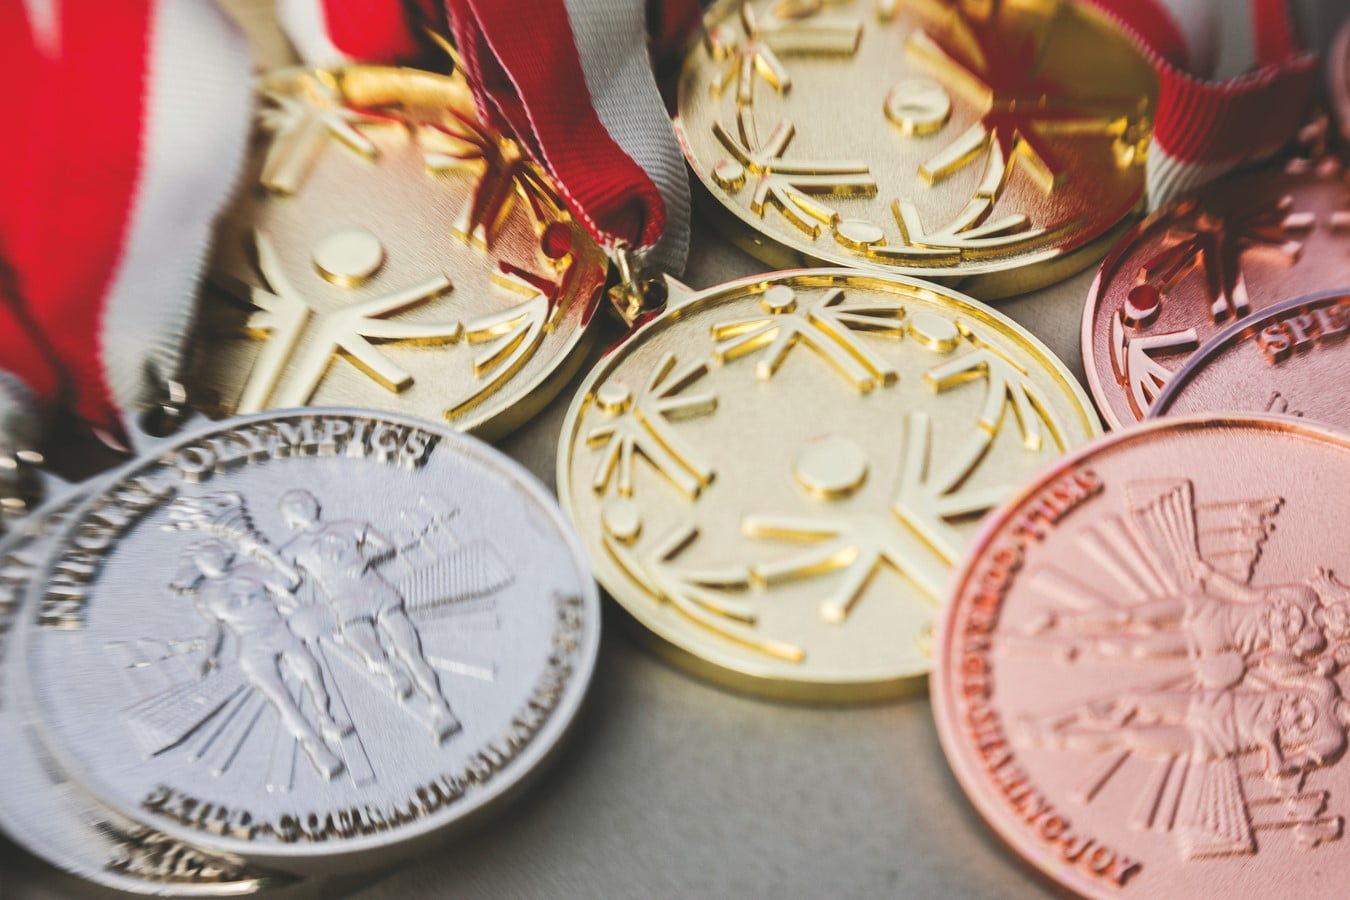 Group of silver, gold, and bronze medals laying down